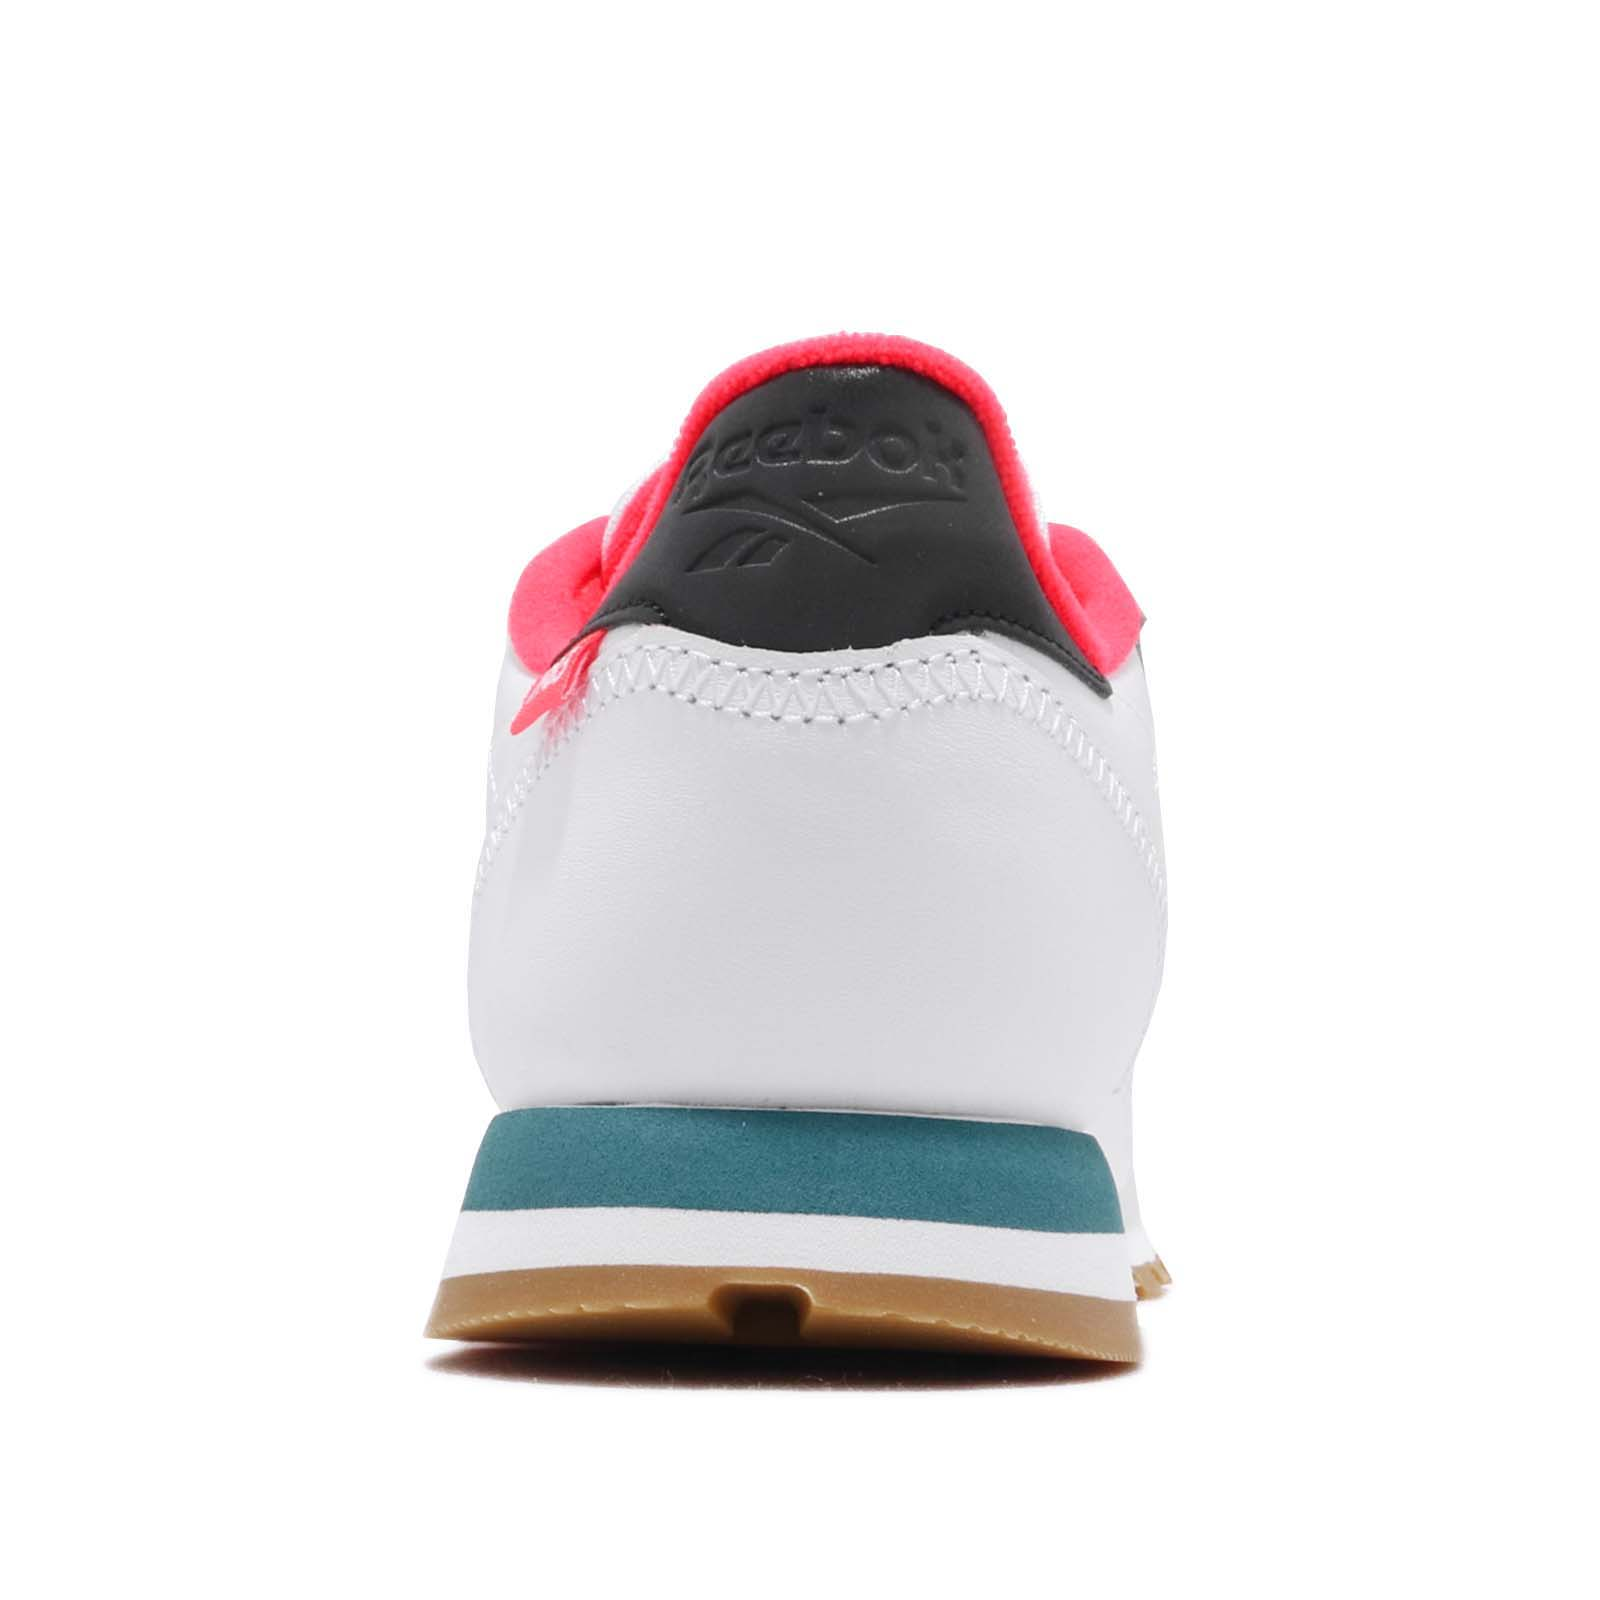 f420a1ba156 Reebok Classic Leather Altered White Red Mist Gum Women Shoes ...